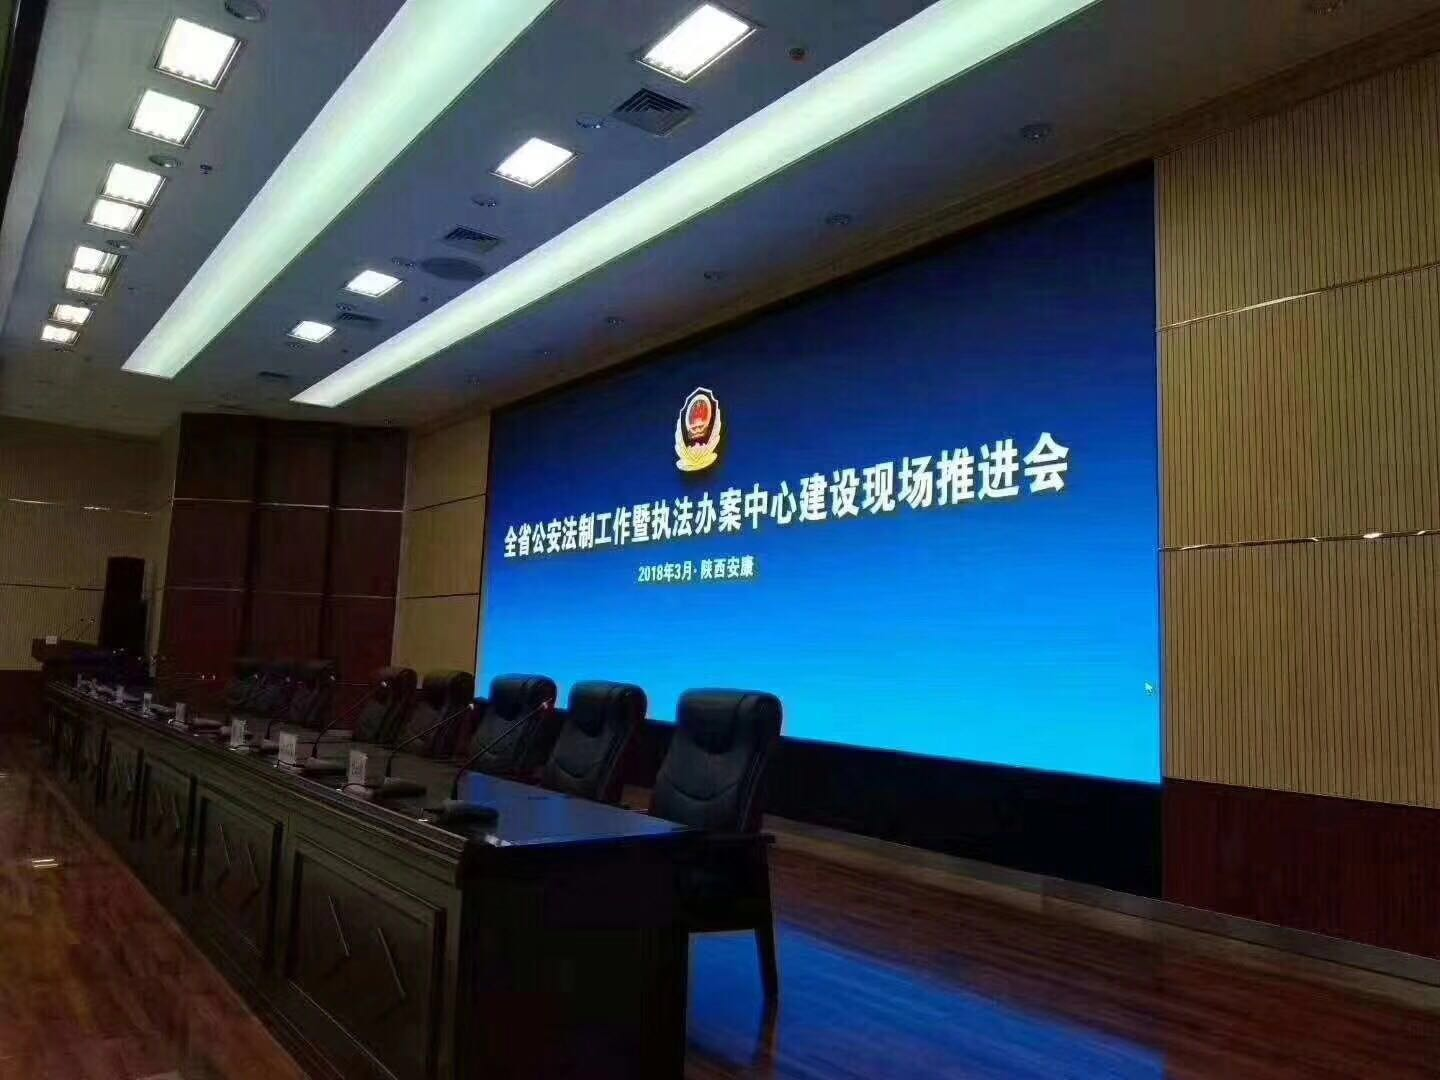 Conference Center of Shaanxi Public Security Bureau